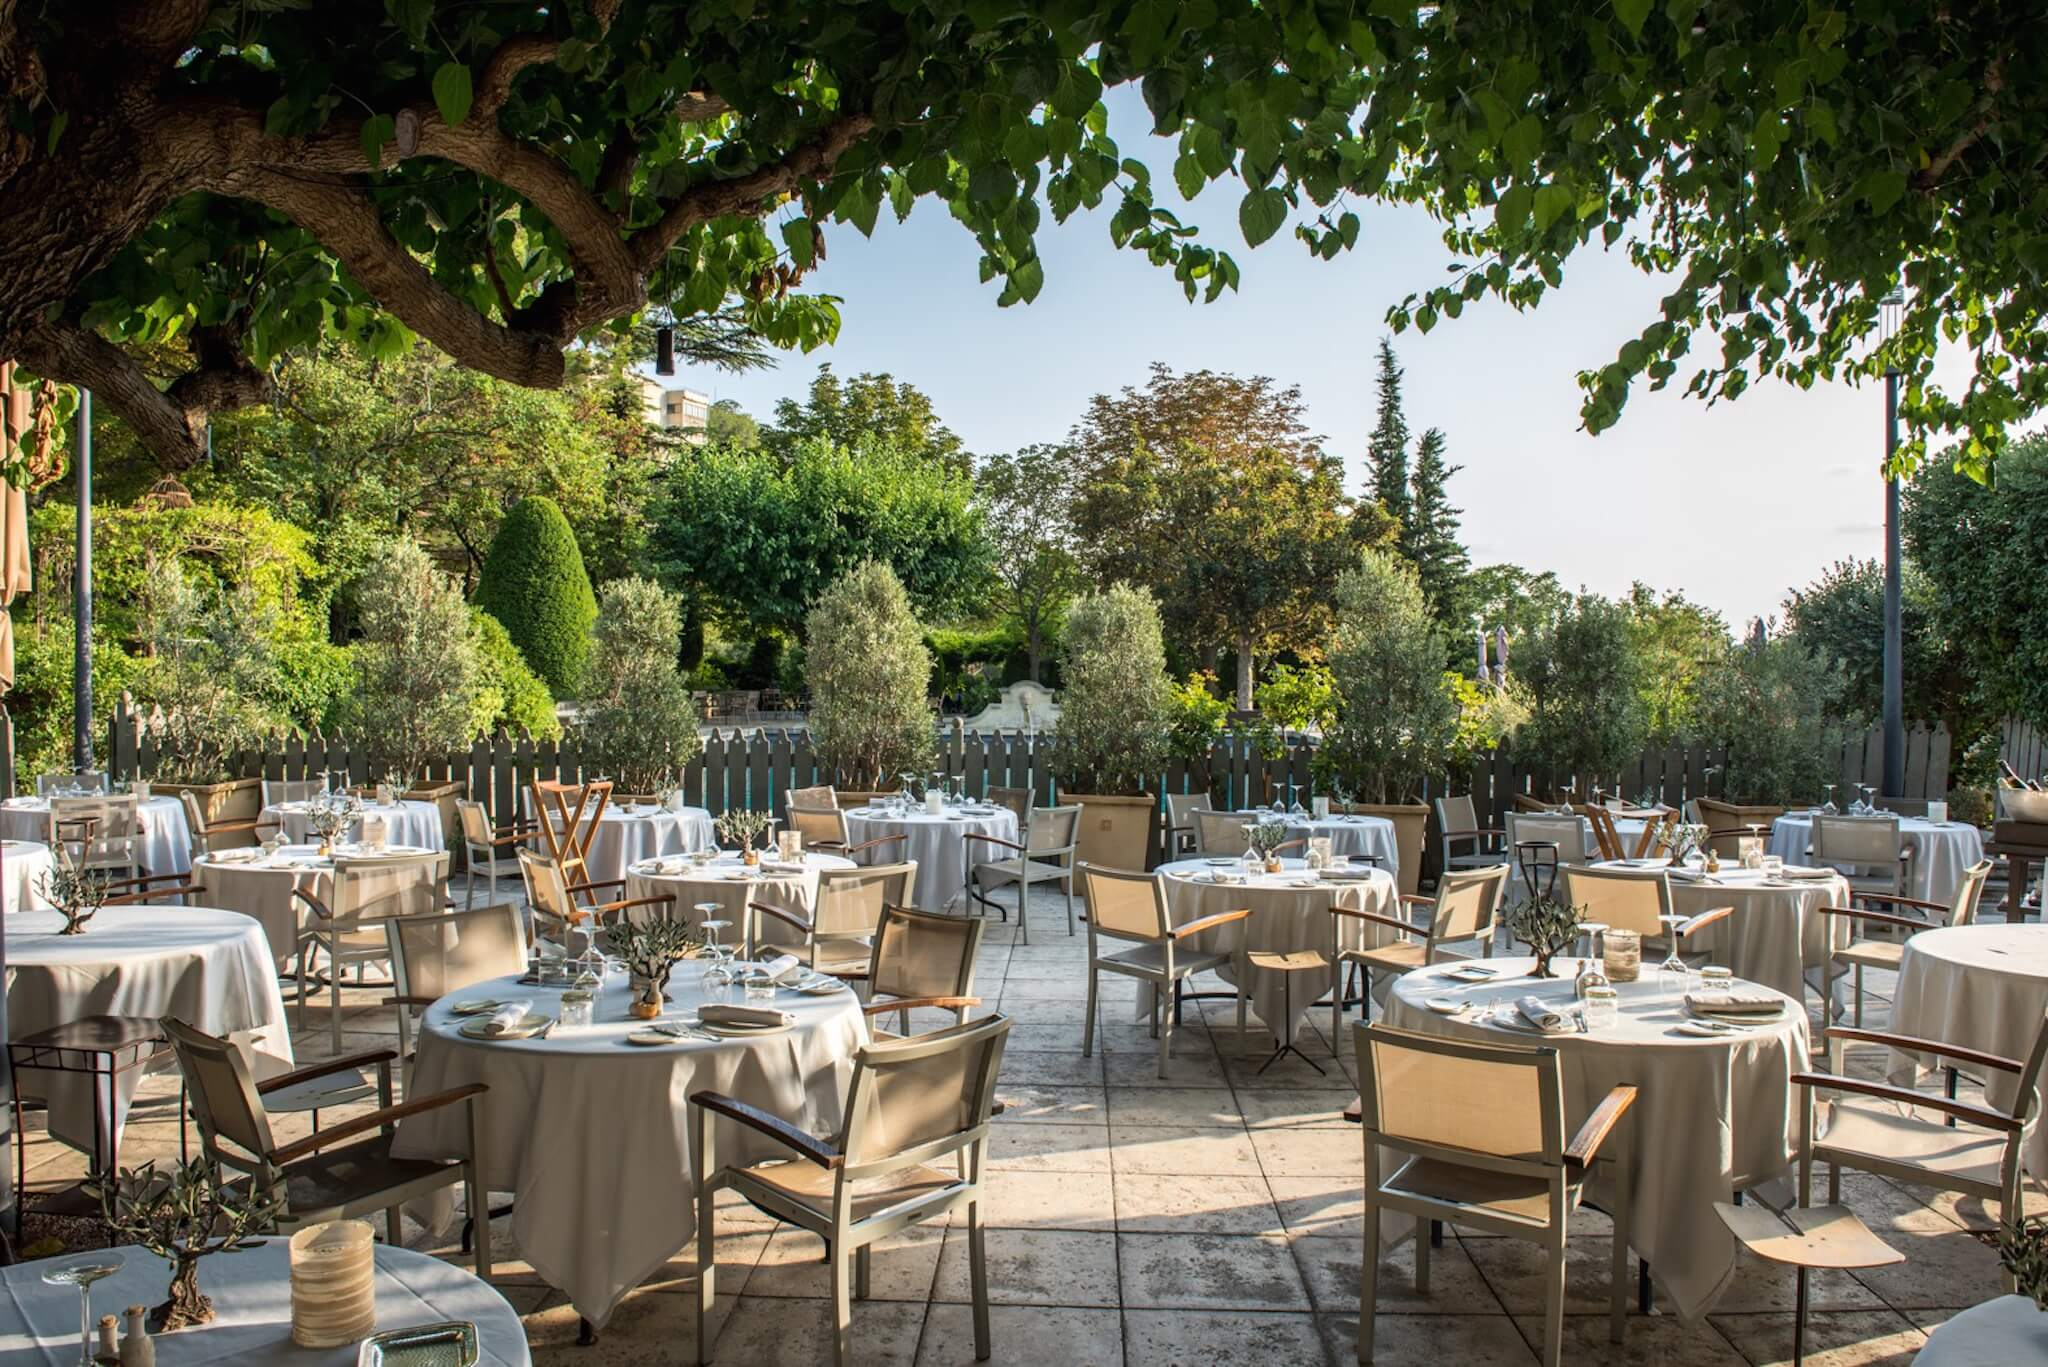 Tables and chairs are set out on a wide, sunny porch under leafy green trees at Baumanière in Arles.